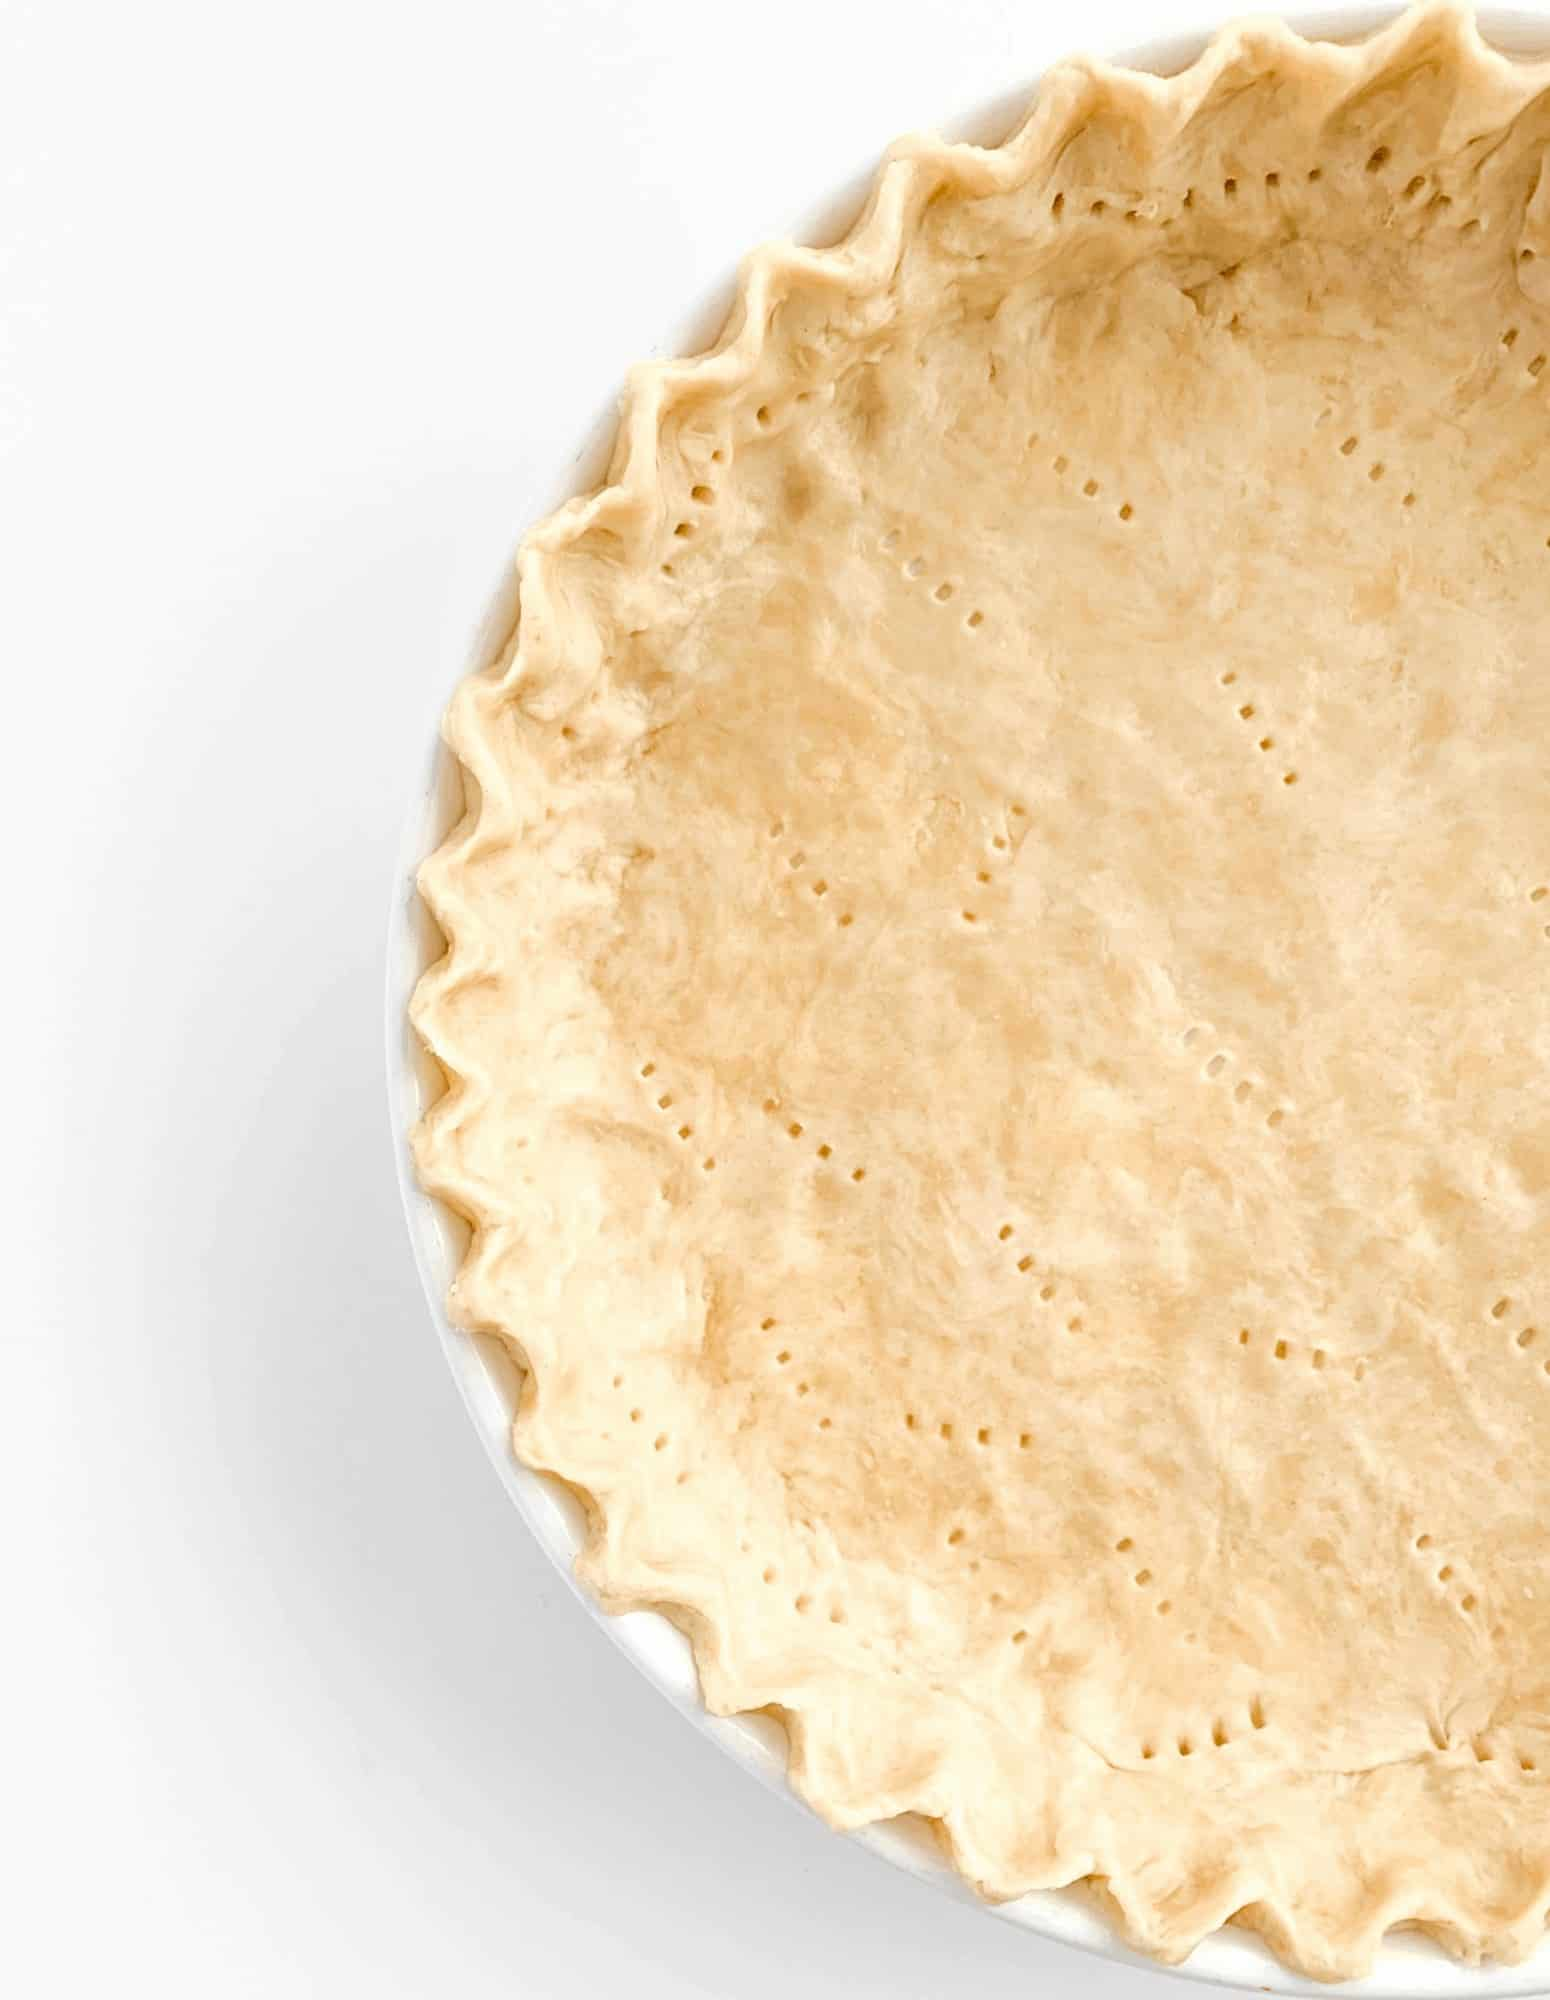 easy-pie-crust-1-semirefinedpalate.com